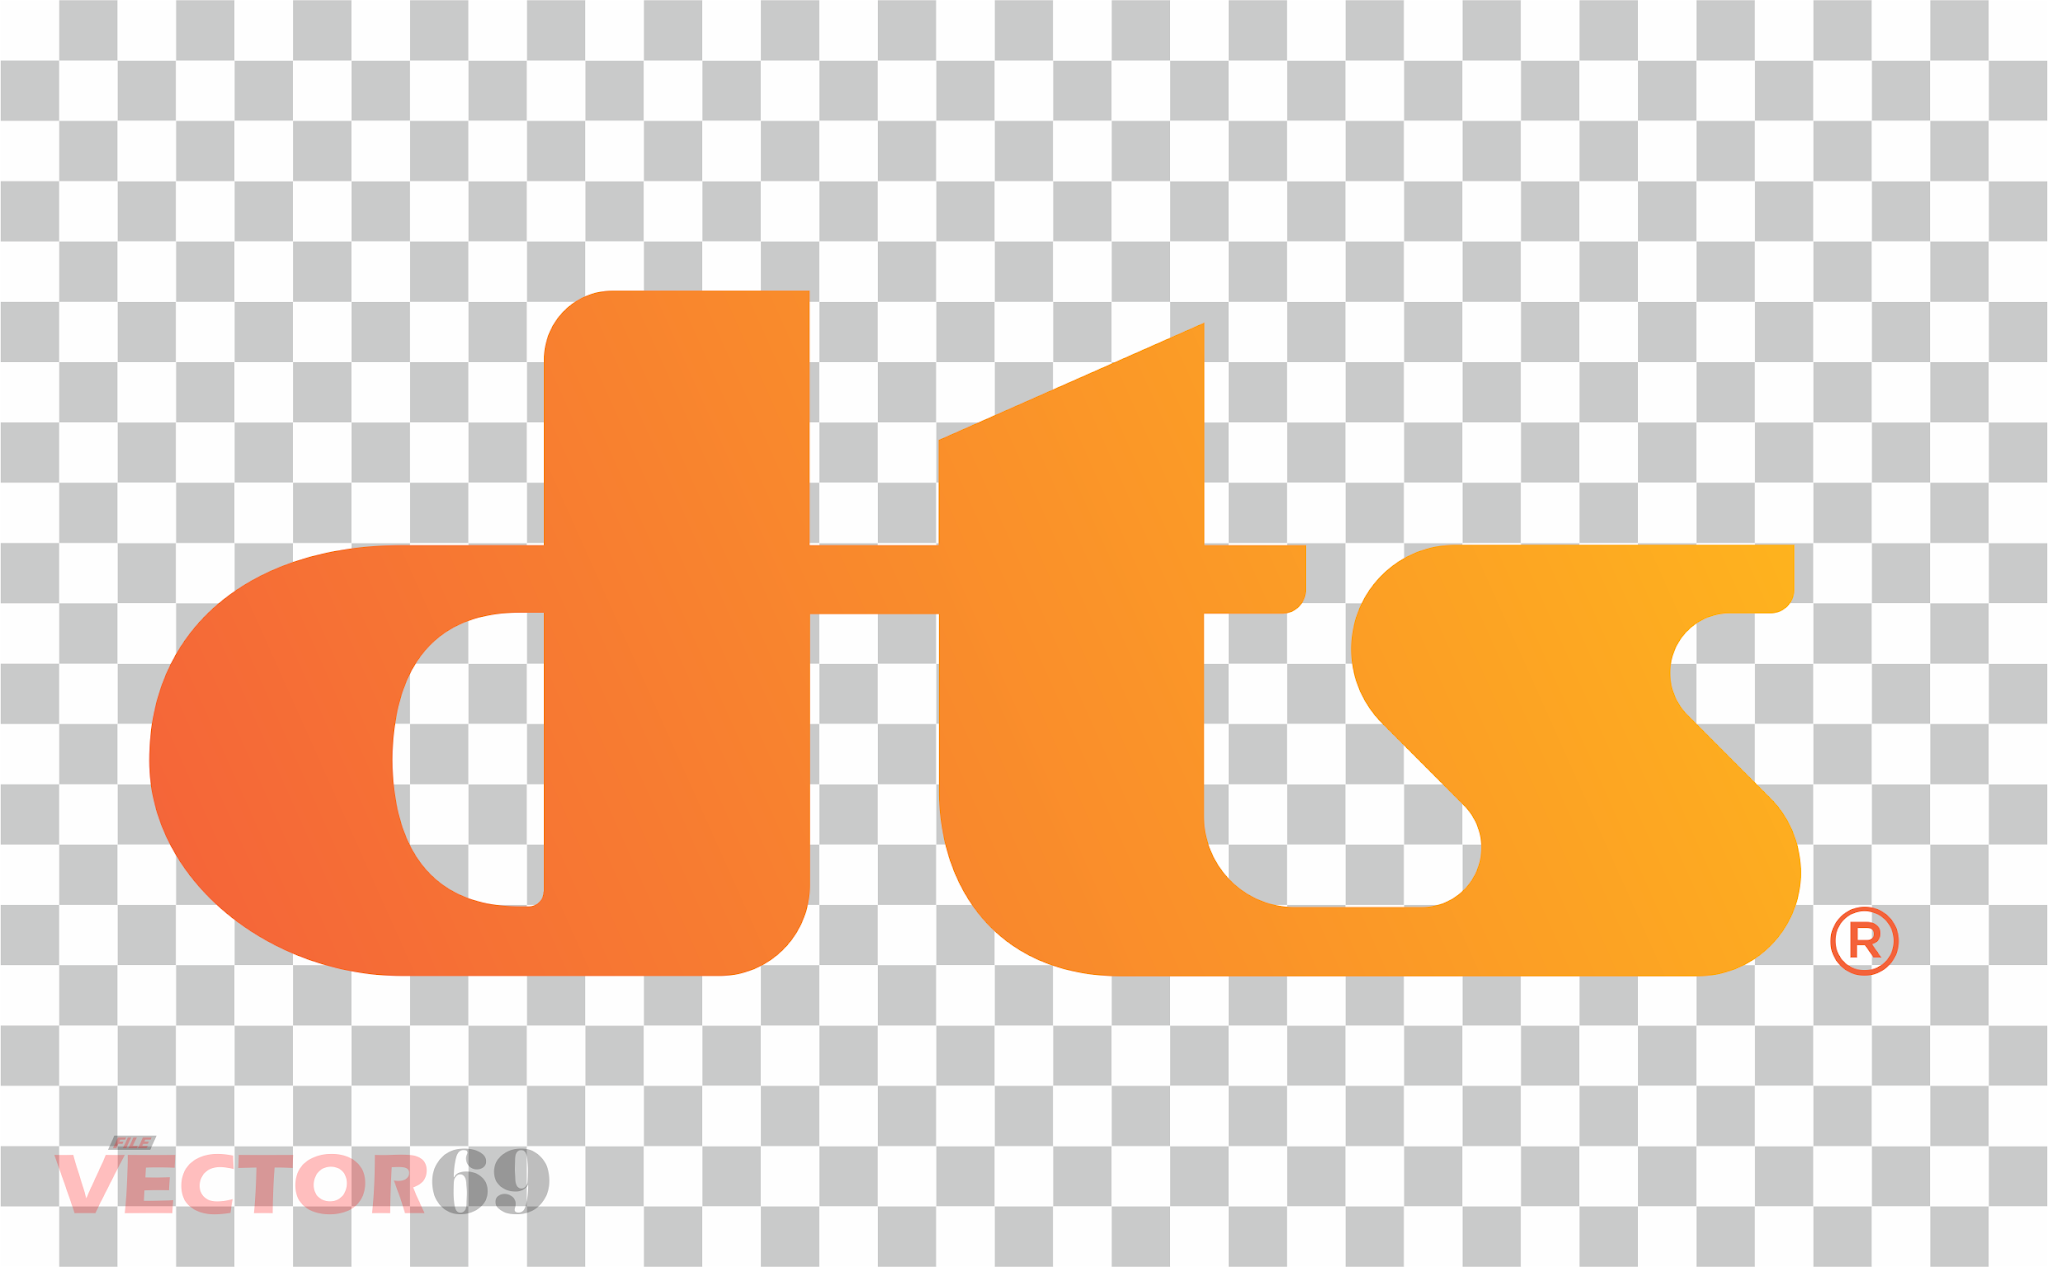 DTS (Digital Theater Systems) New 2020 Logo - Download Vector File PNG (Portable Network Graphics)